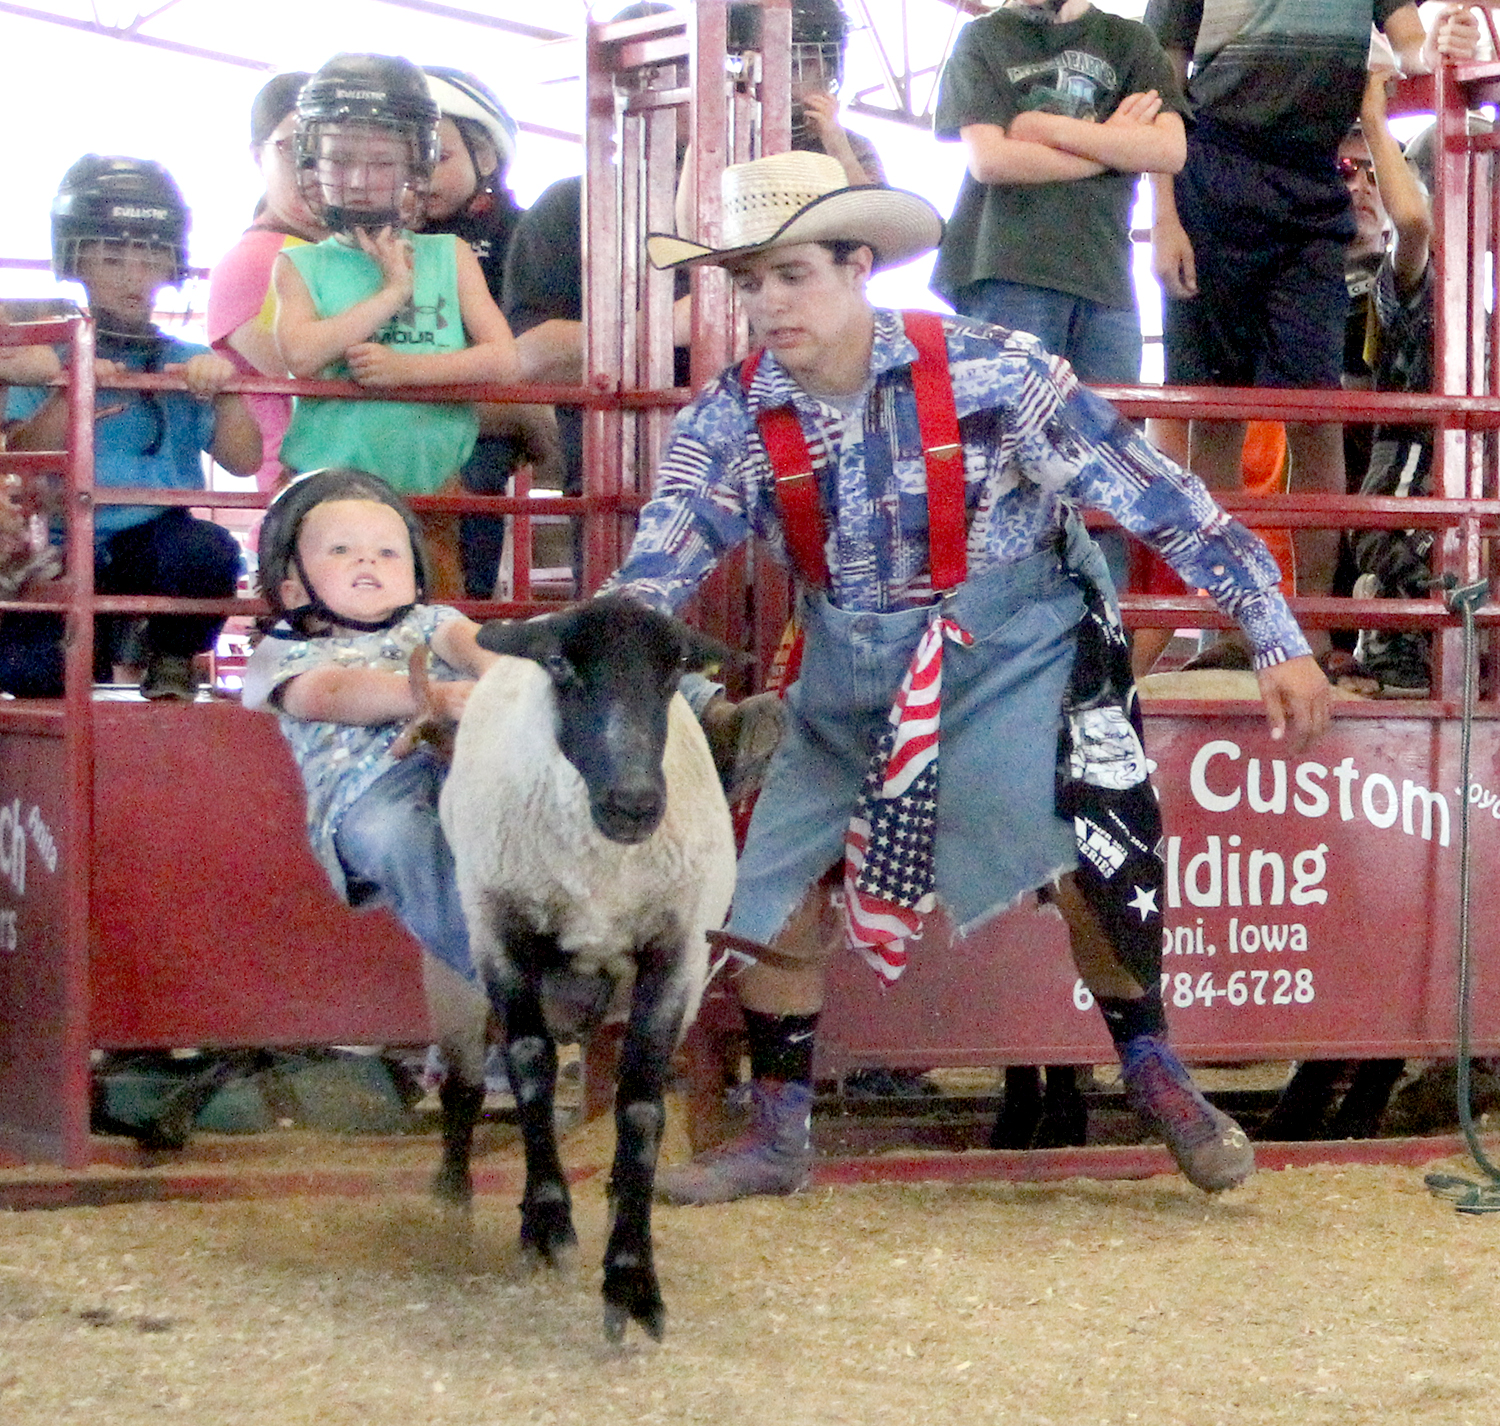 Luke Hosch of Cascade, age 3, hangs on for dear life during the Great Jones County Fair Mutton Busting Contest July 23 at the fairgrounds in Monticello. Be sure to check out coverage of the fair's 4-H, FFA and Open Exhibit show results in Sections B and C. (Photo by Abby Manternach)